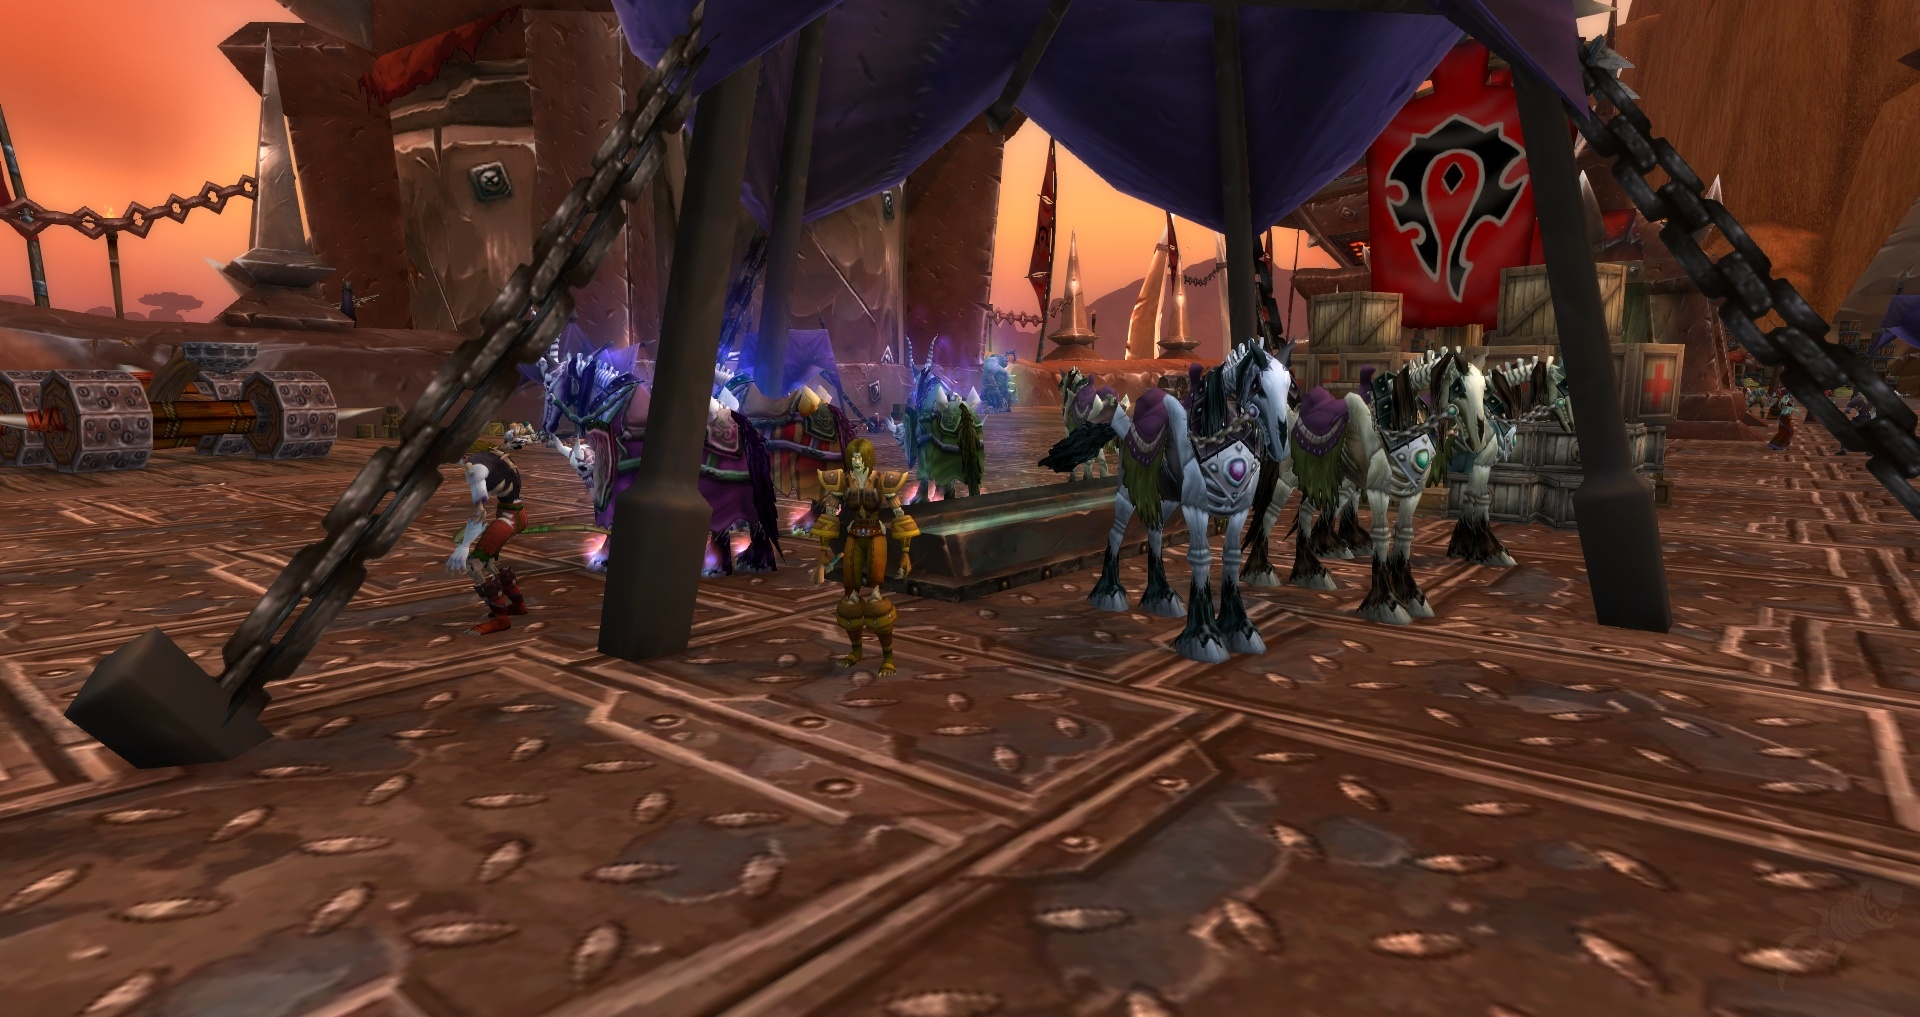 Stormwind and Orgrimmar 26624 Updates - Refugee Camps, God of War